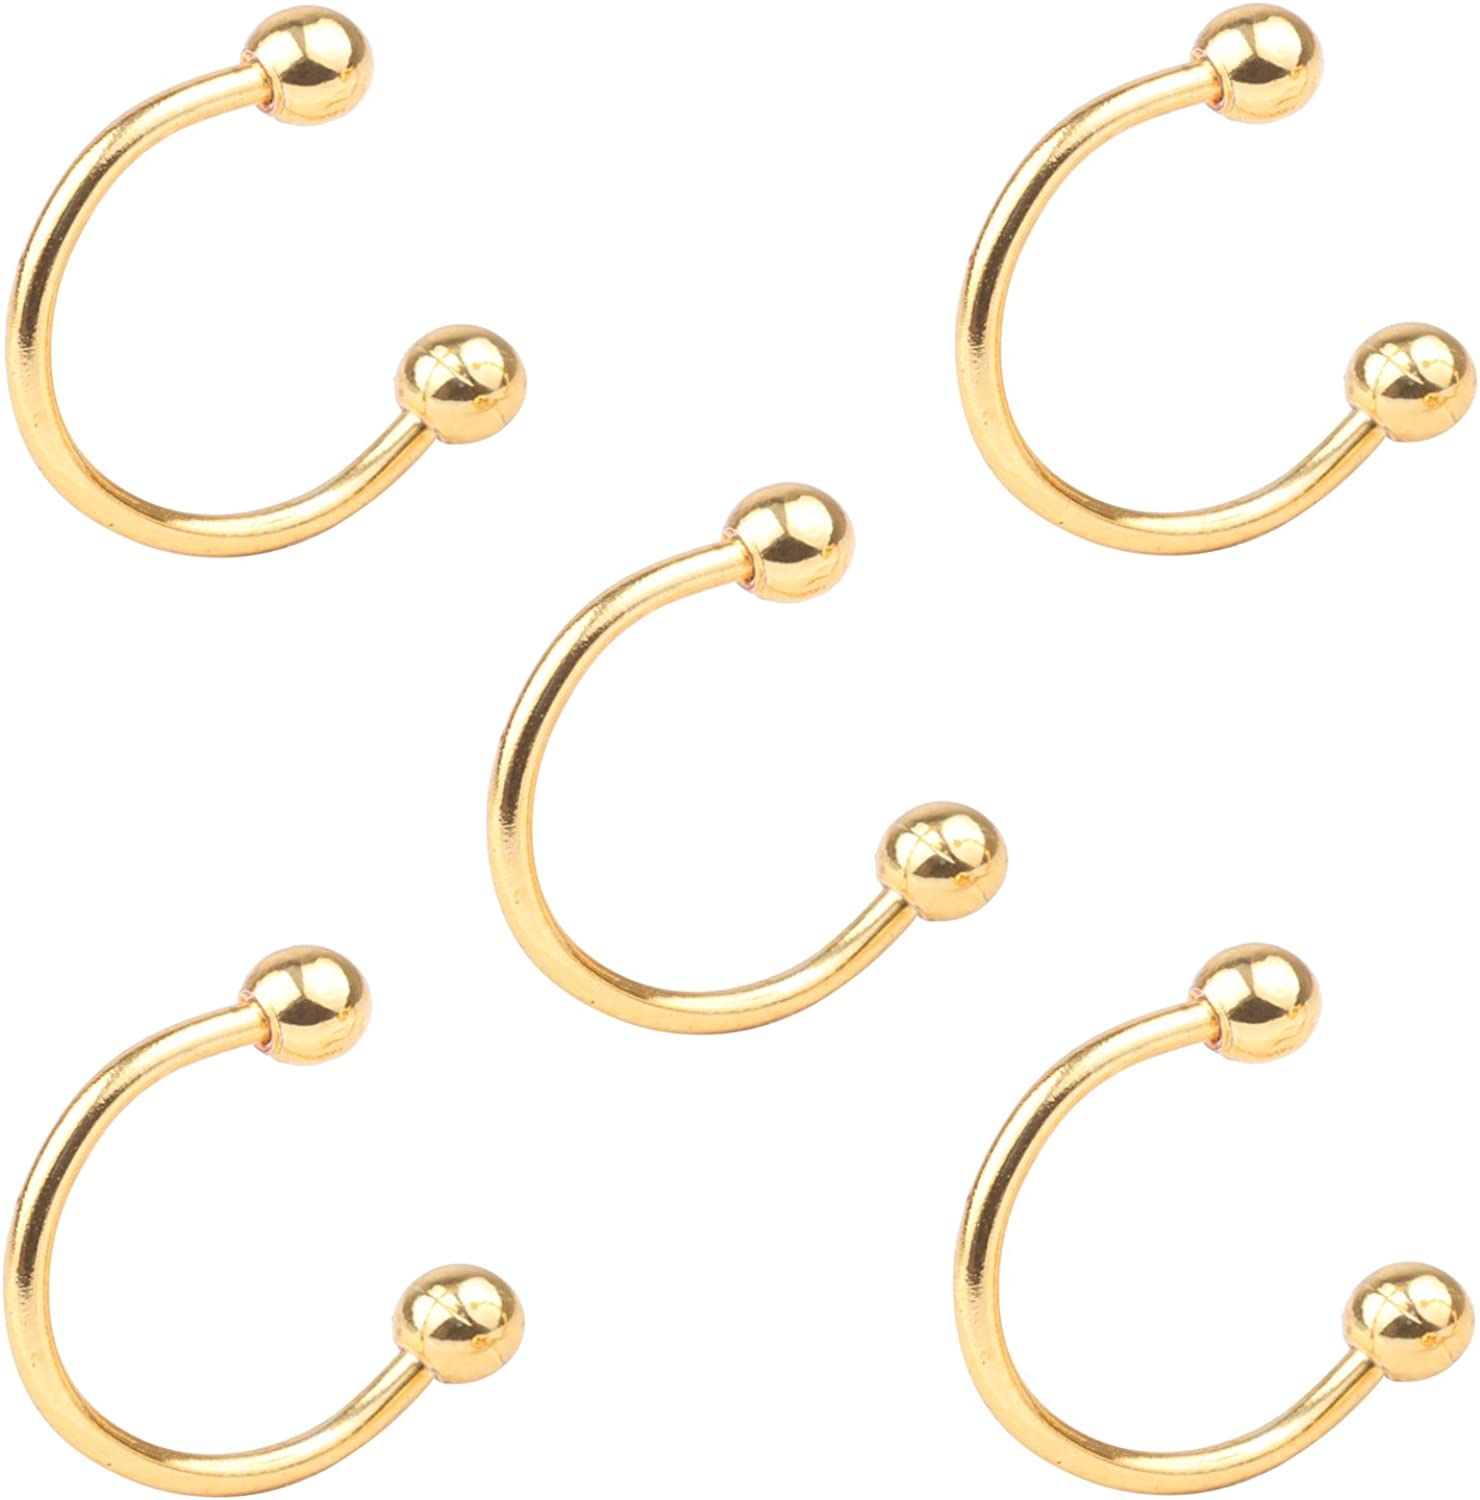 Z2Z 110G Unisex Horseshoe Hoop Septum Max 74% OFF Helix Cartilage Special price for a limited time Circul Ear